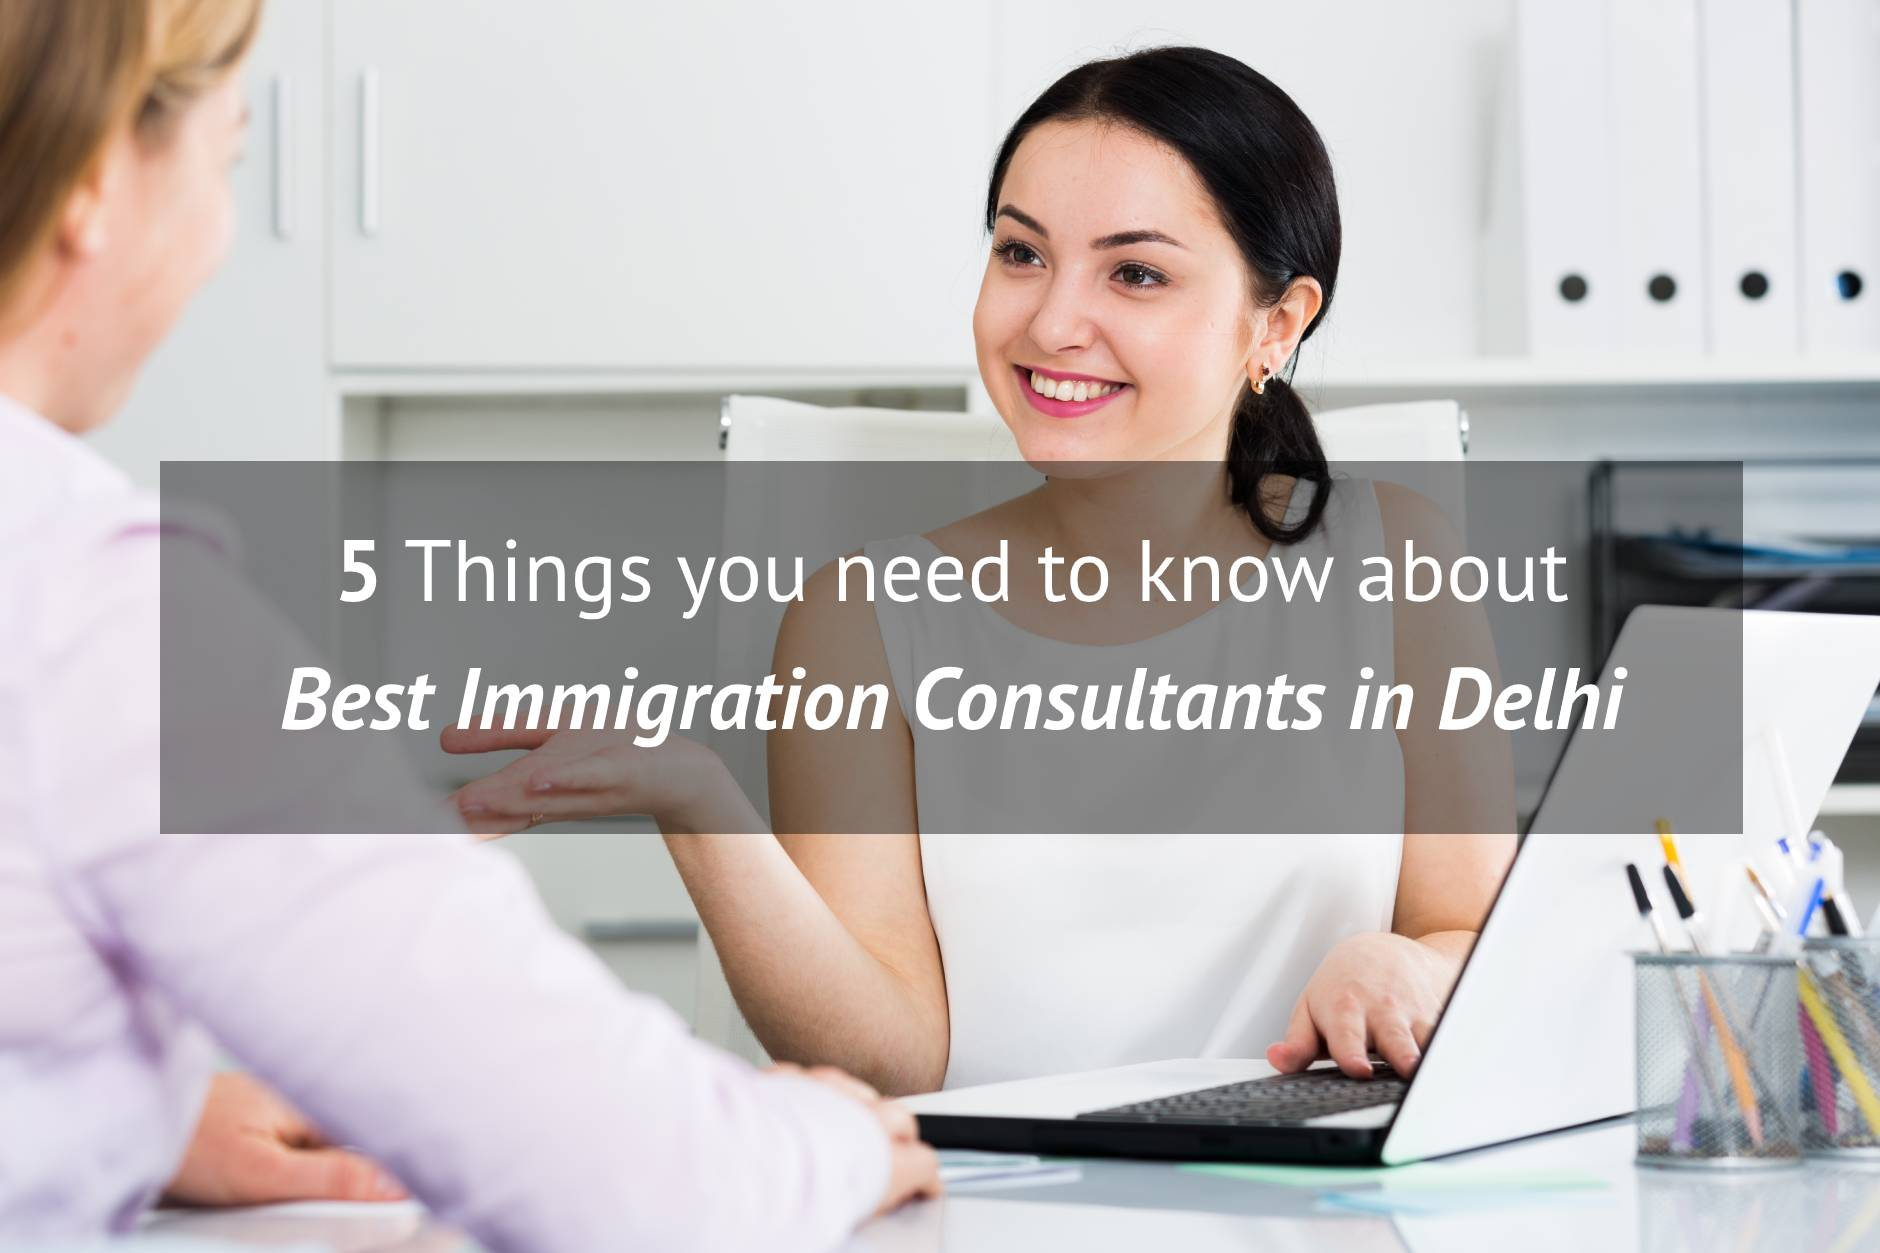 Things you need to know about Best Immigration Consultants in Delhi